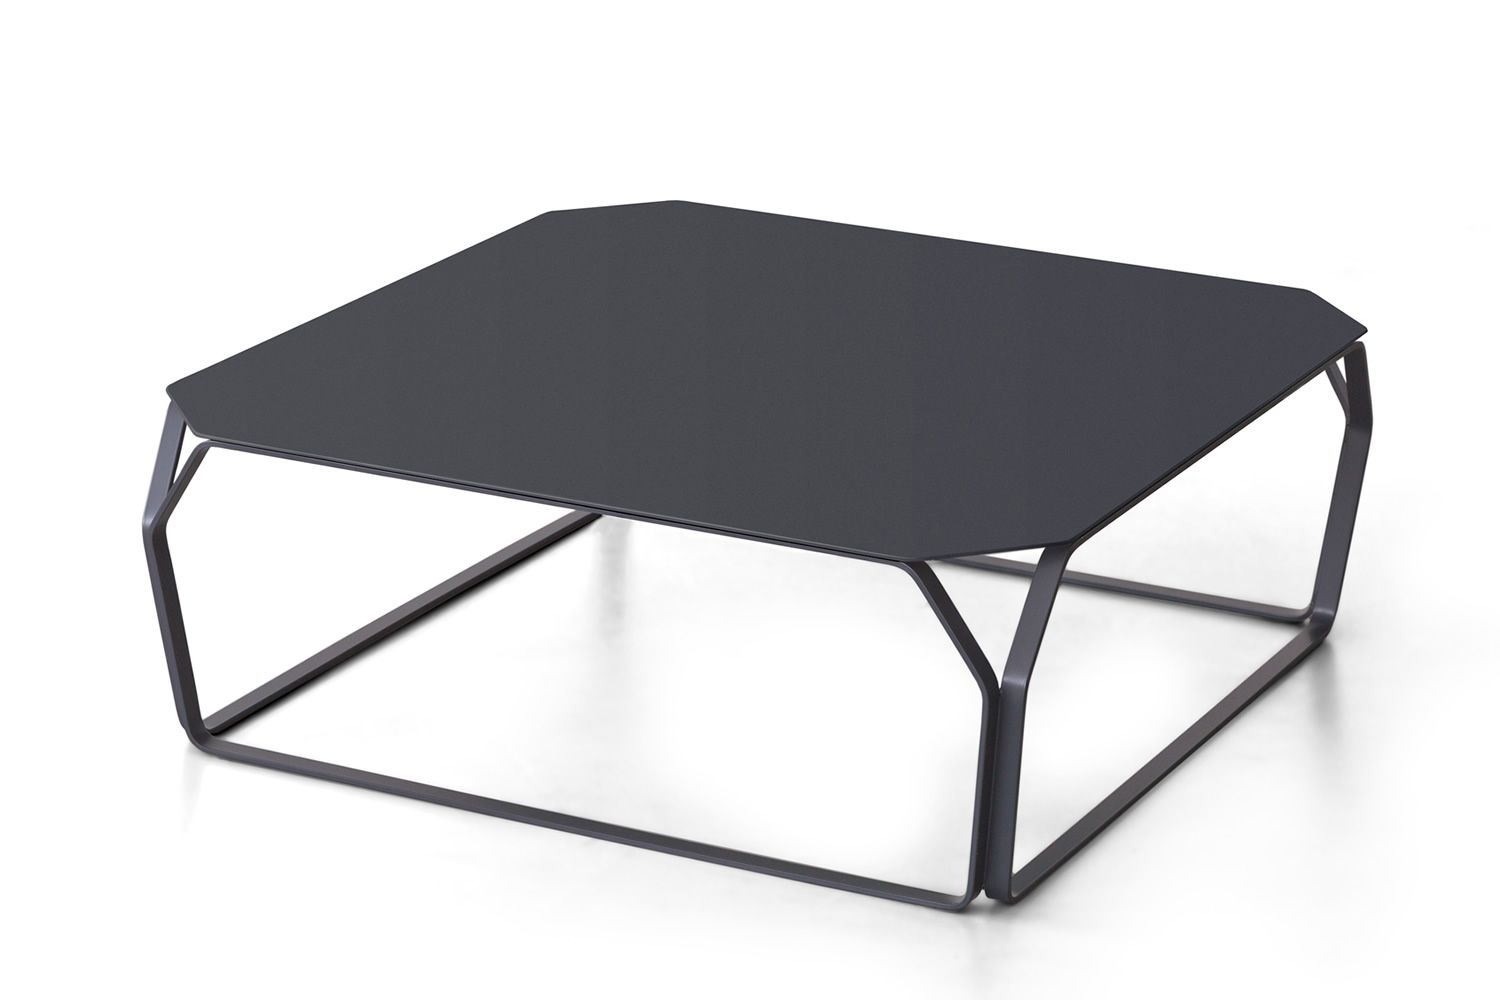 tray 2 metal table design en m tal carr e ou rectangulaire disponible en plusieurs couleurs. Black Bedroom Furniture Sets. Home Design Ideas